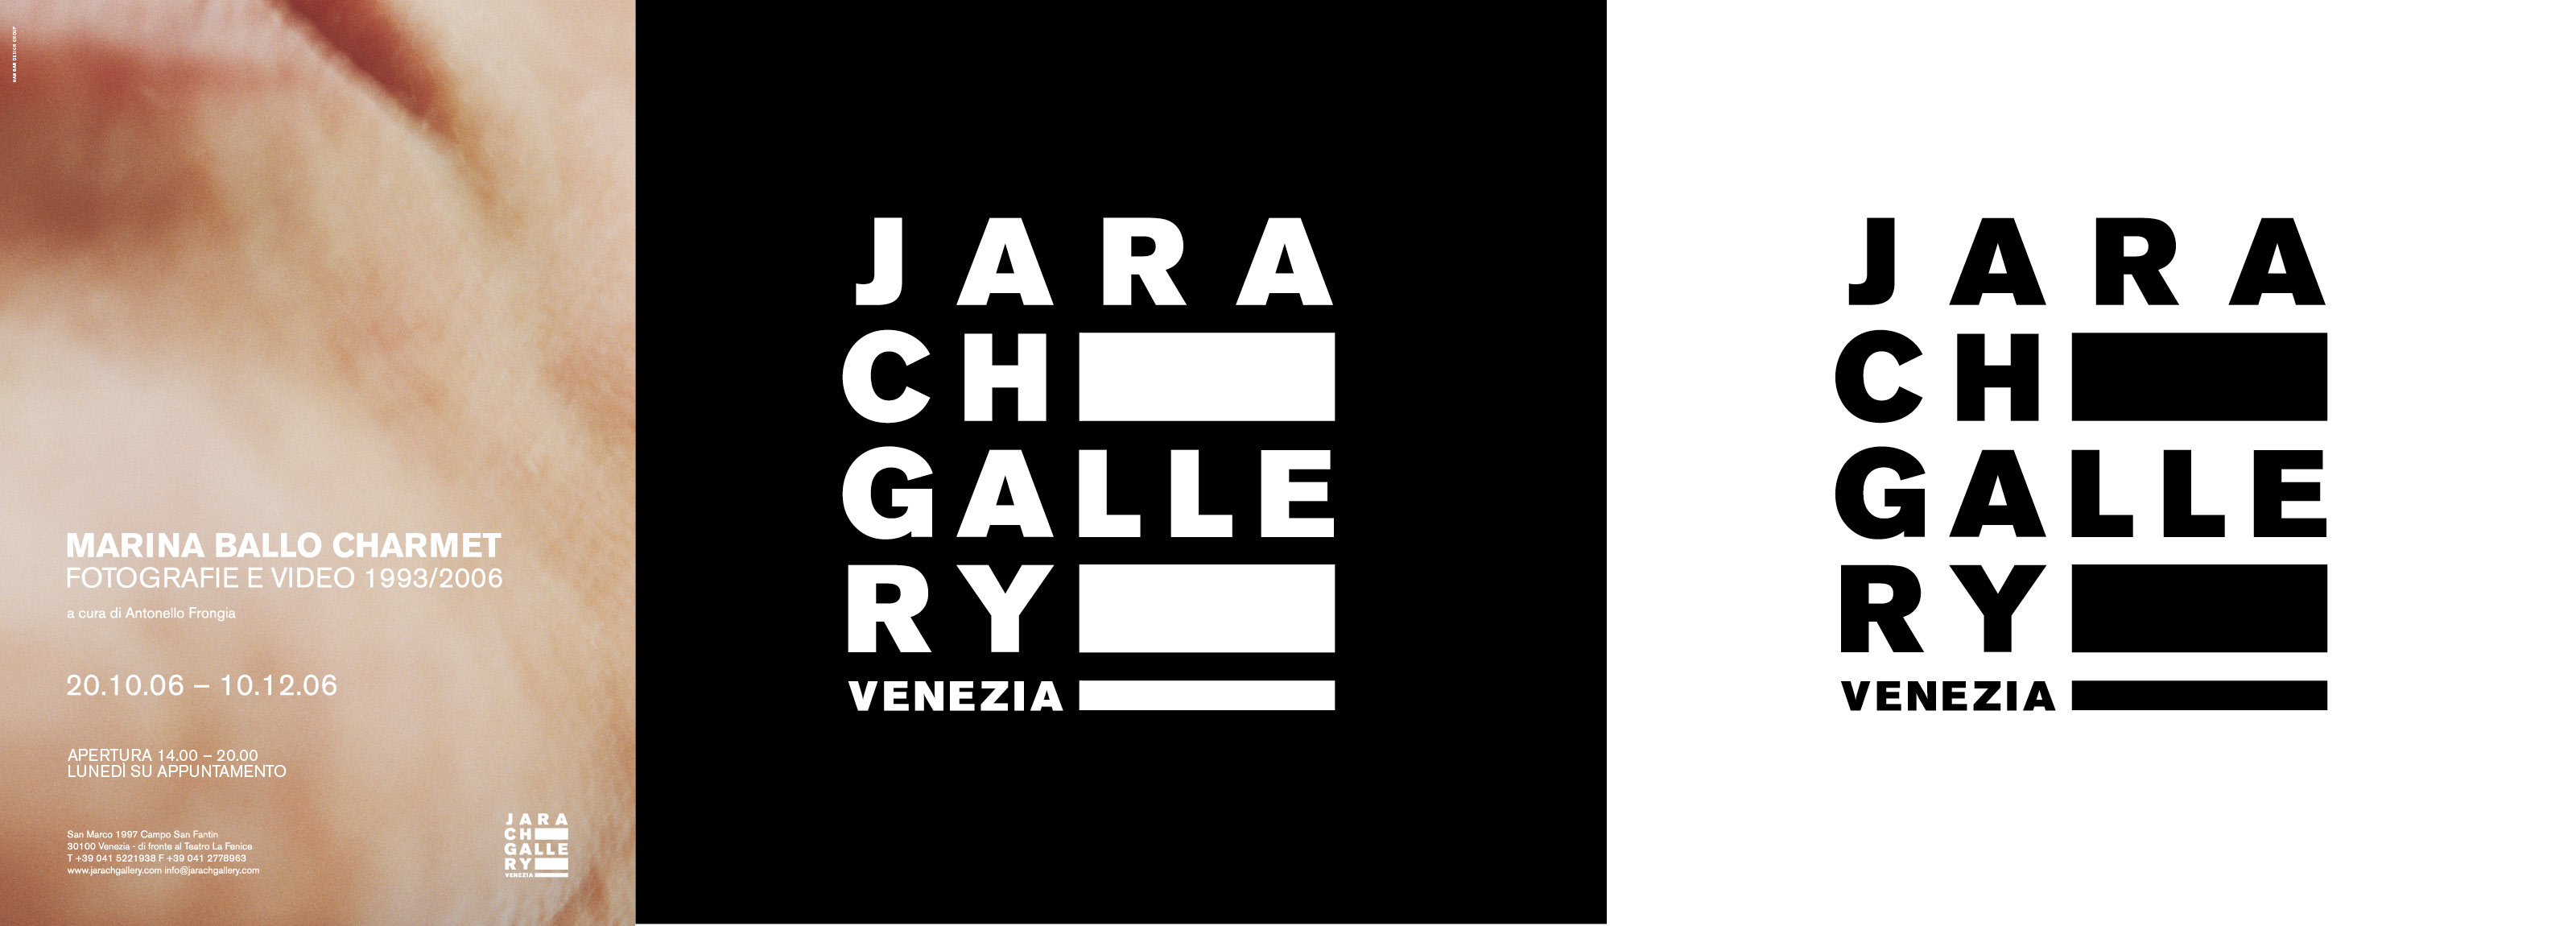 Jarach Gallery - Jarach Gallery <br> A project for art